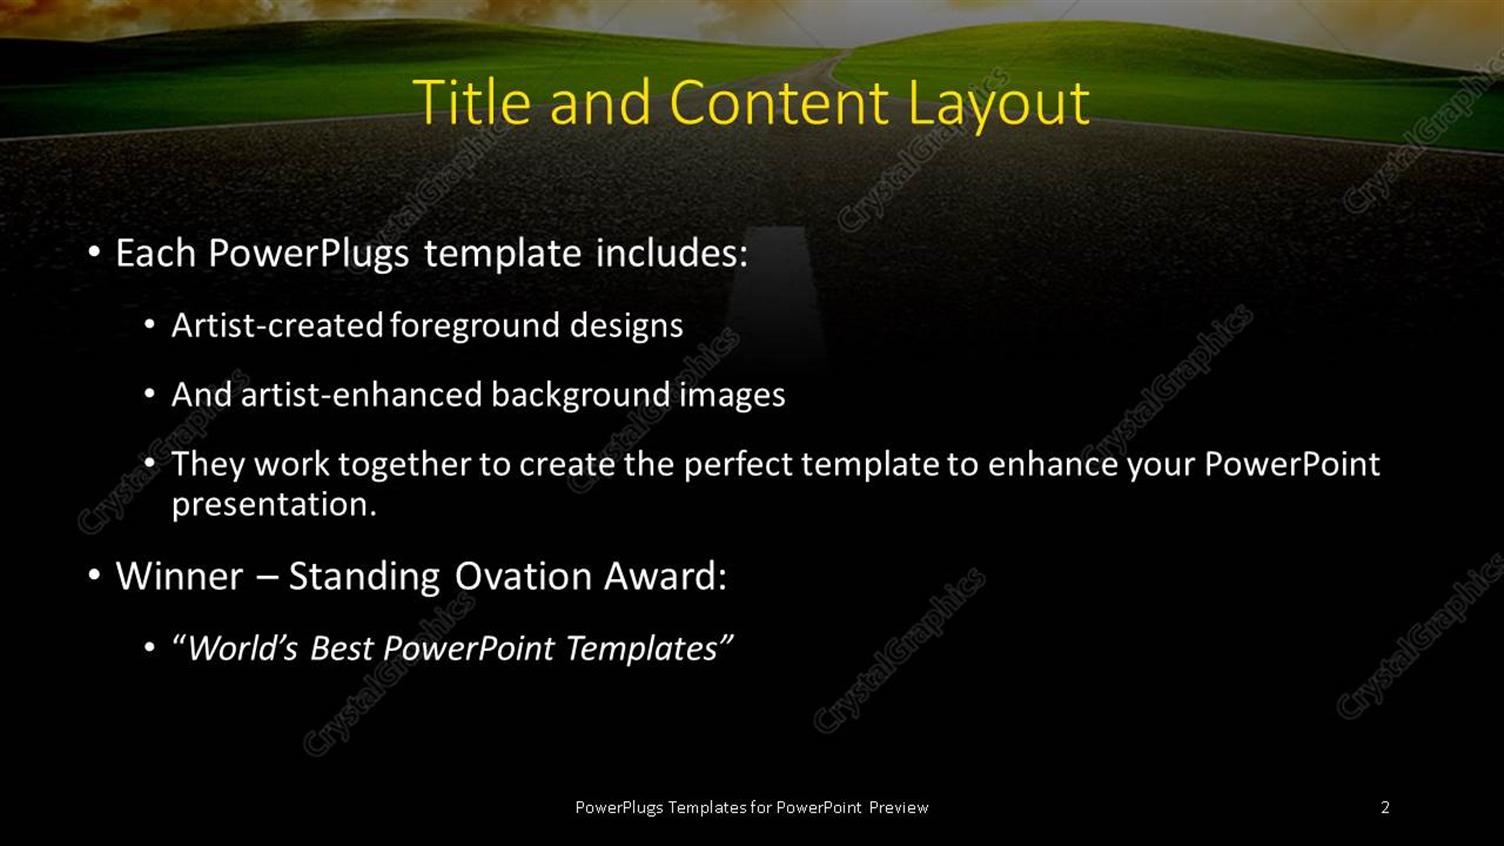 millionaire template powerpoint gallery - templates example free, Powerpoint templates